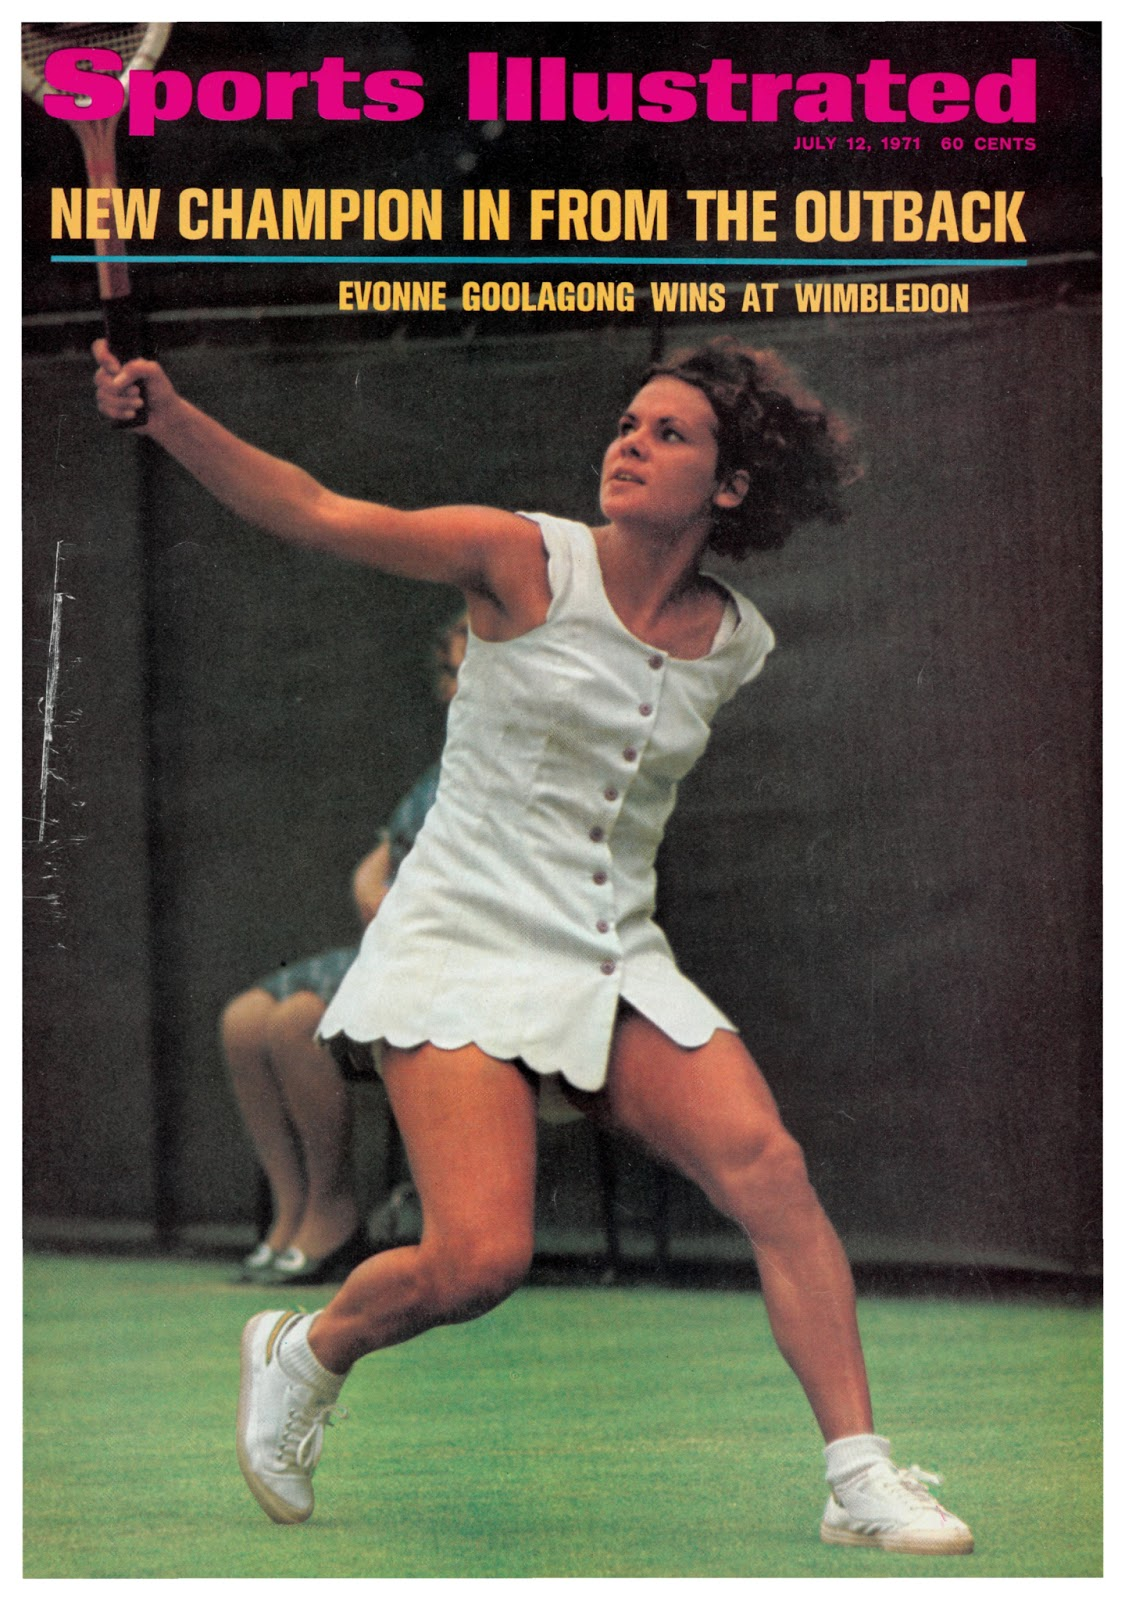 Kenneth In The 212 An Annotated Look At Sports Illustrated S 90 Tennis Covers